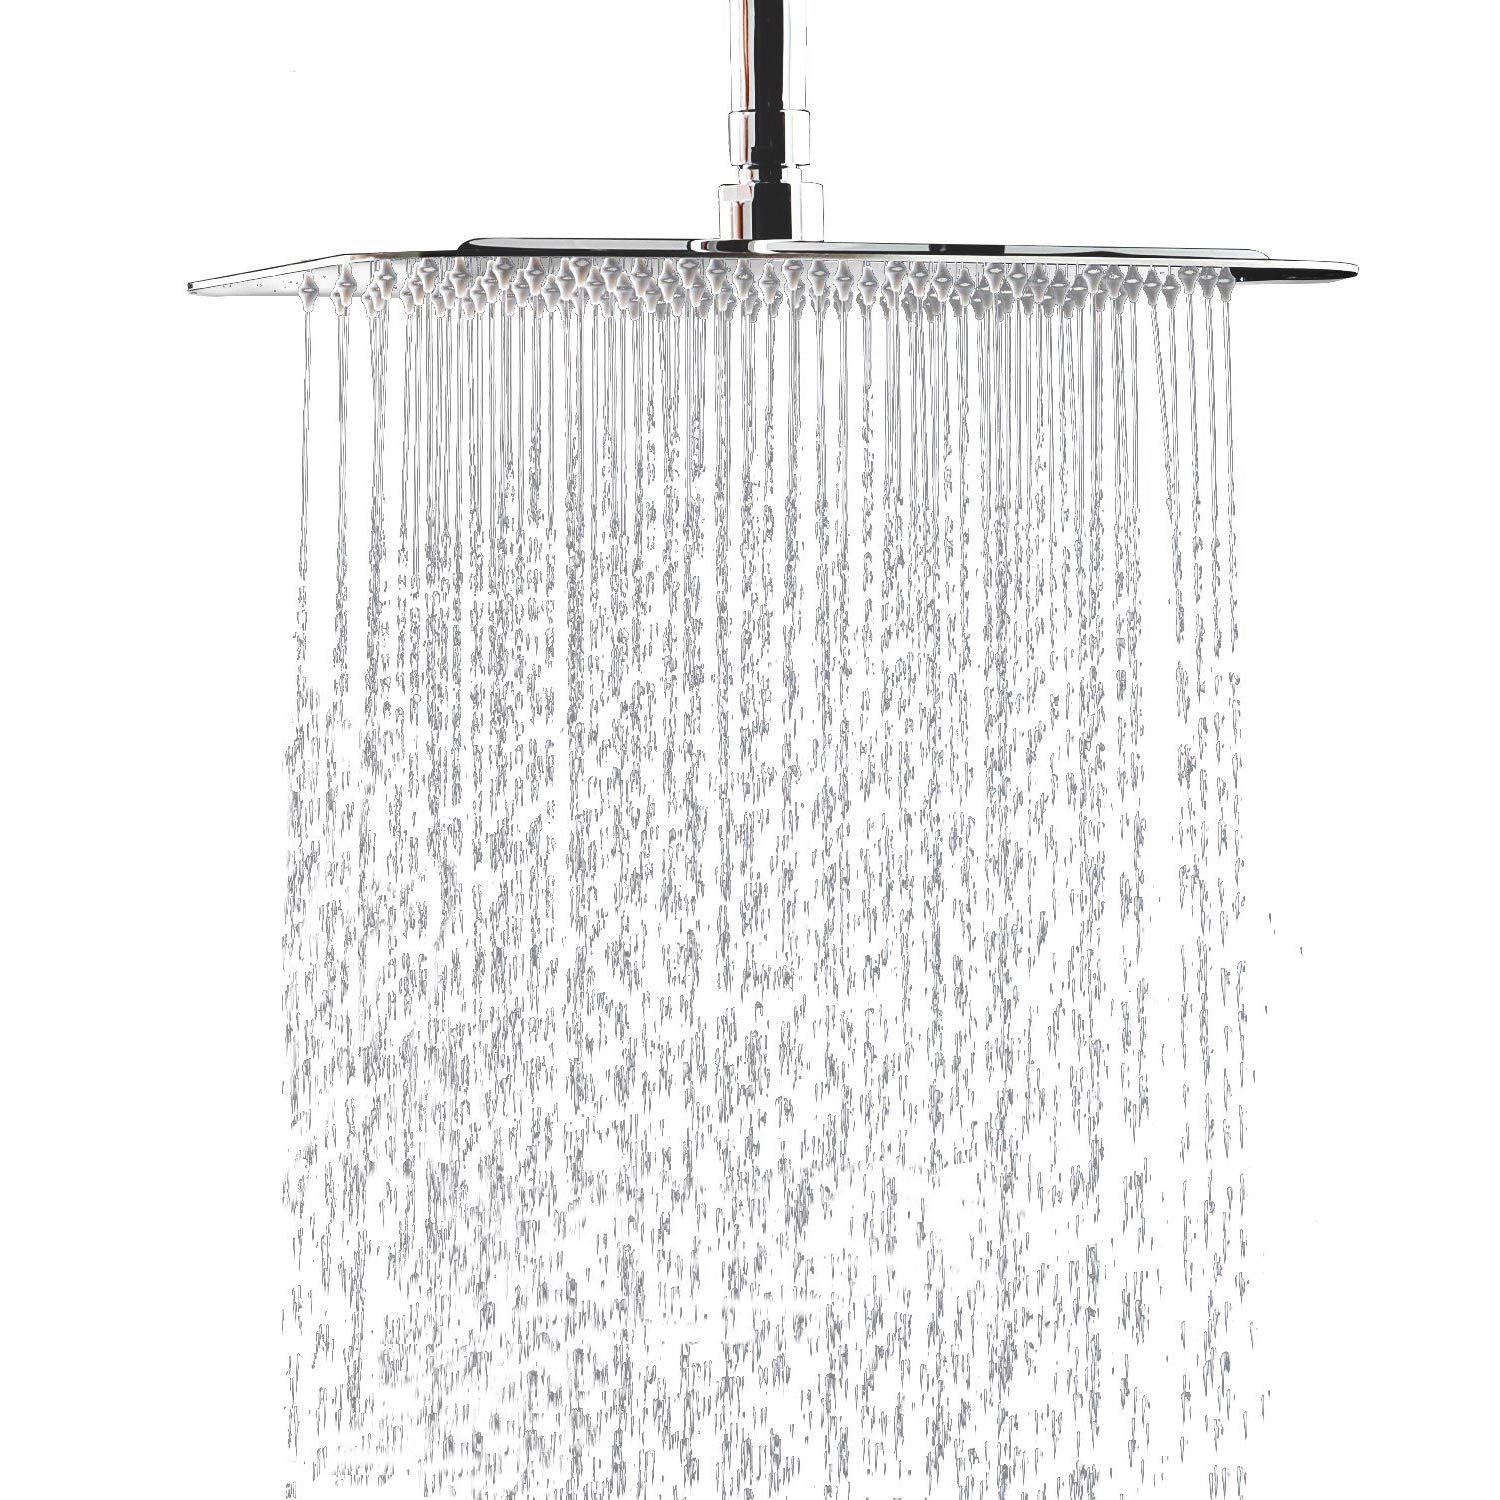 MeSun Rain Shower Head, 12 Inch Large Square High Pressure waterfall Stainless Steel Showerhead, Ultra Thin Rainfall High Flow Adjustable Fixed Shower Head with Polish Chrome Finish